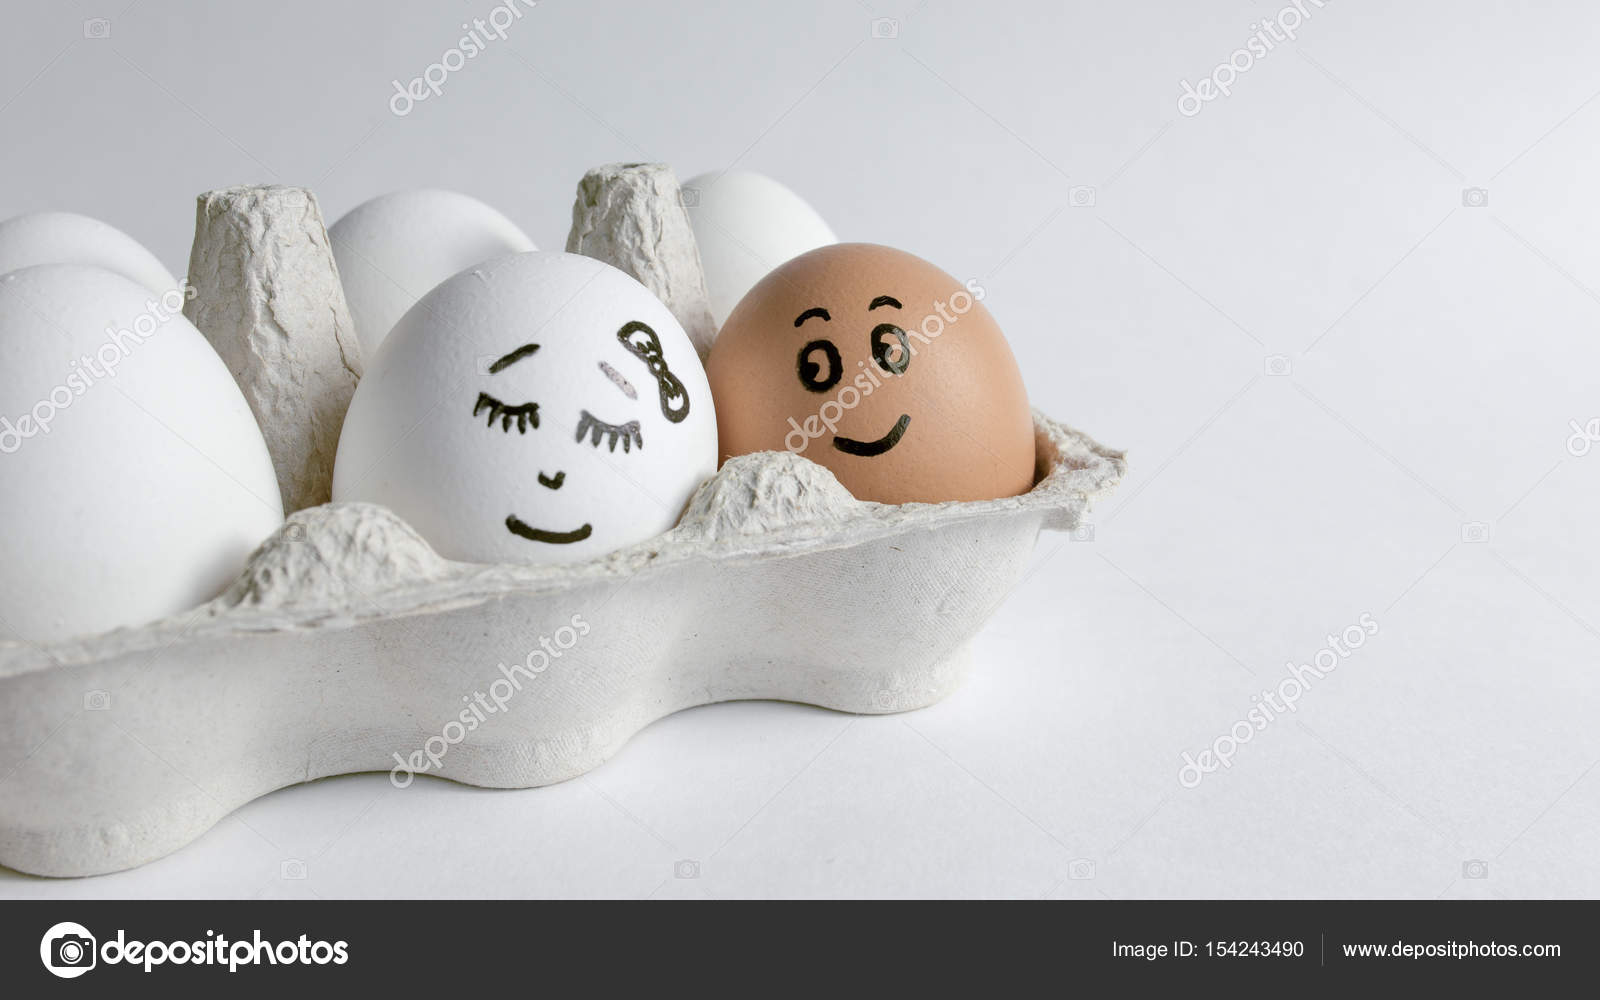 Eggs with funny faces in the package on a white background